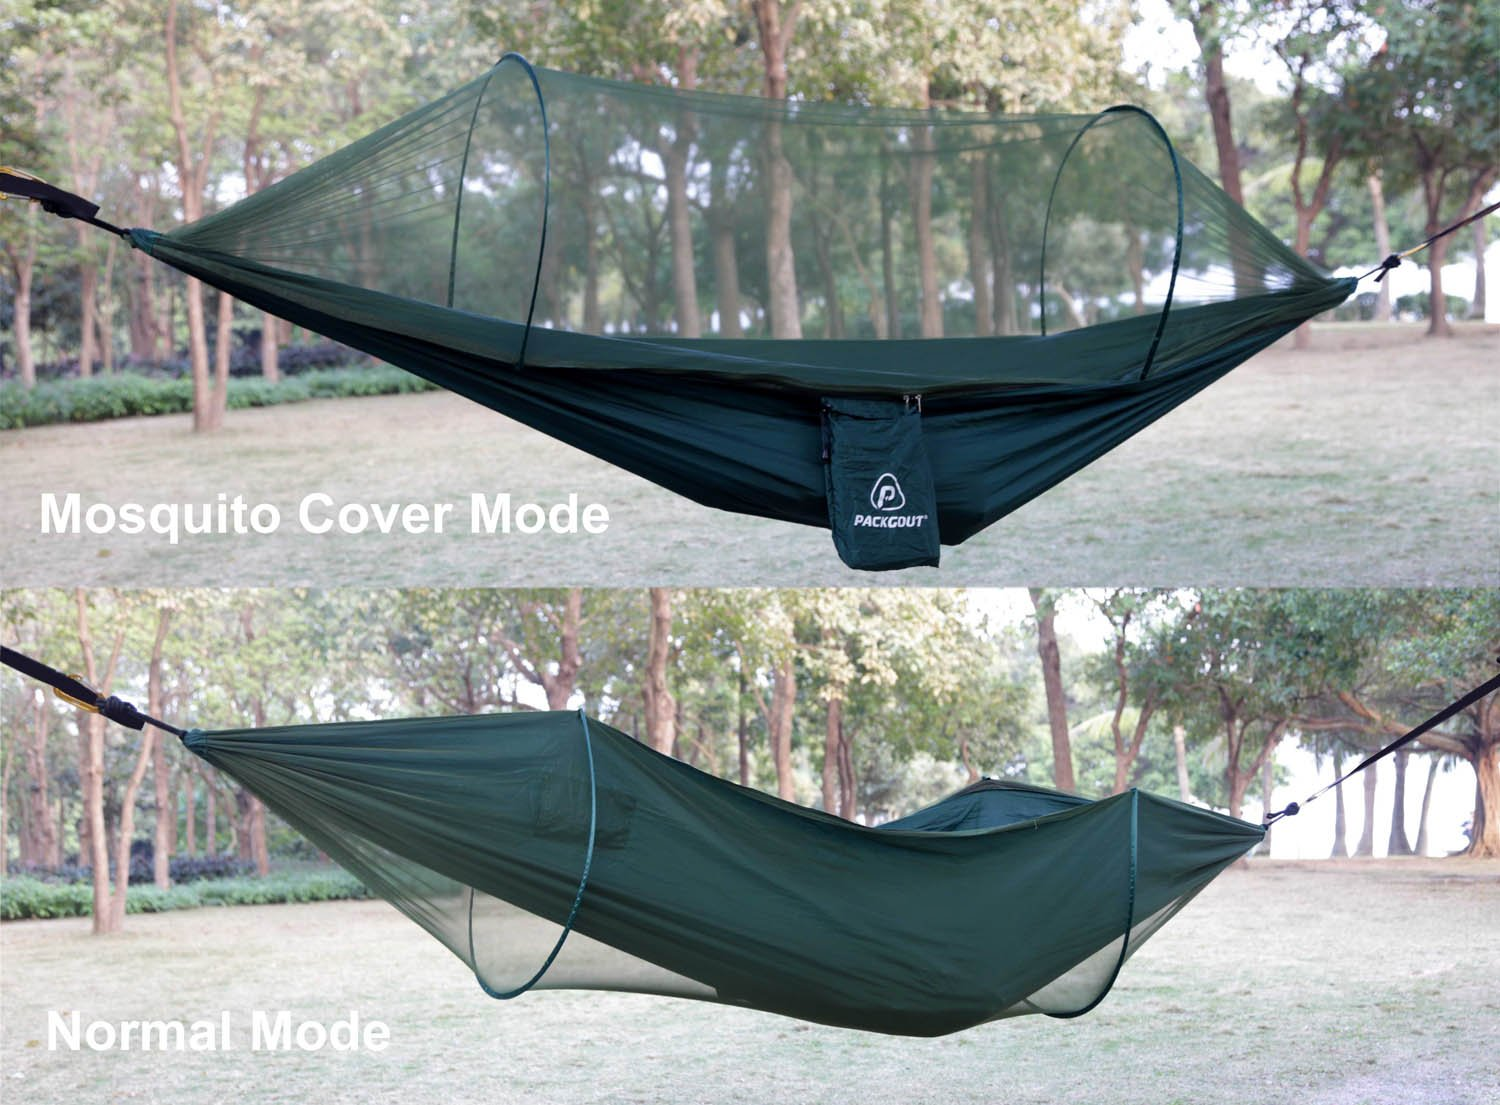 amazon    mosquito hammock packgout camping gear sleeping hammock with bug   and lightweight portable hammock for travel hiking outdoor  sports  u0026     amazon    mosquito hammock packgout camping gear sleeping      rh   amazon